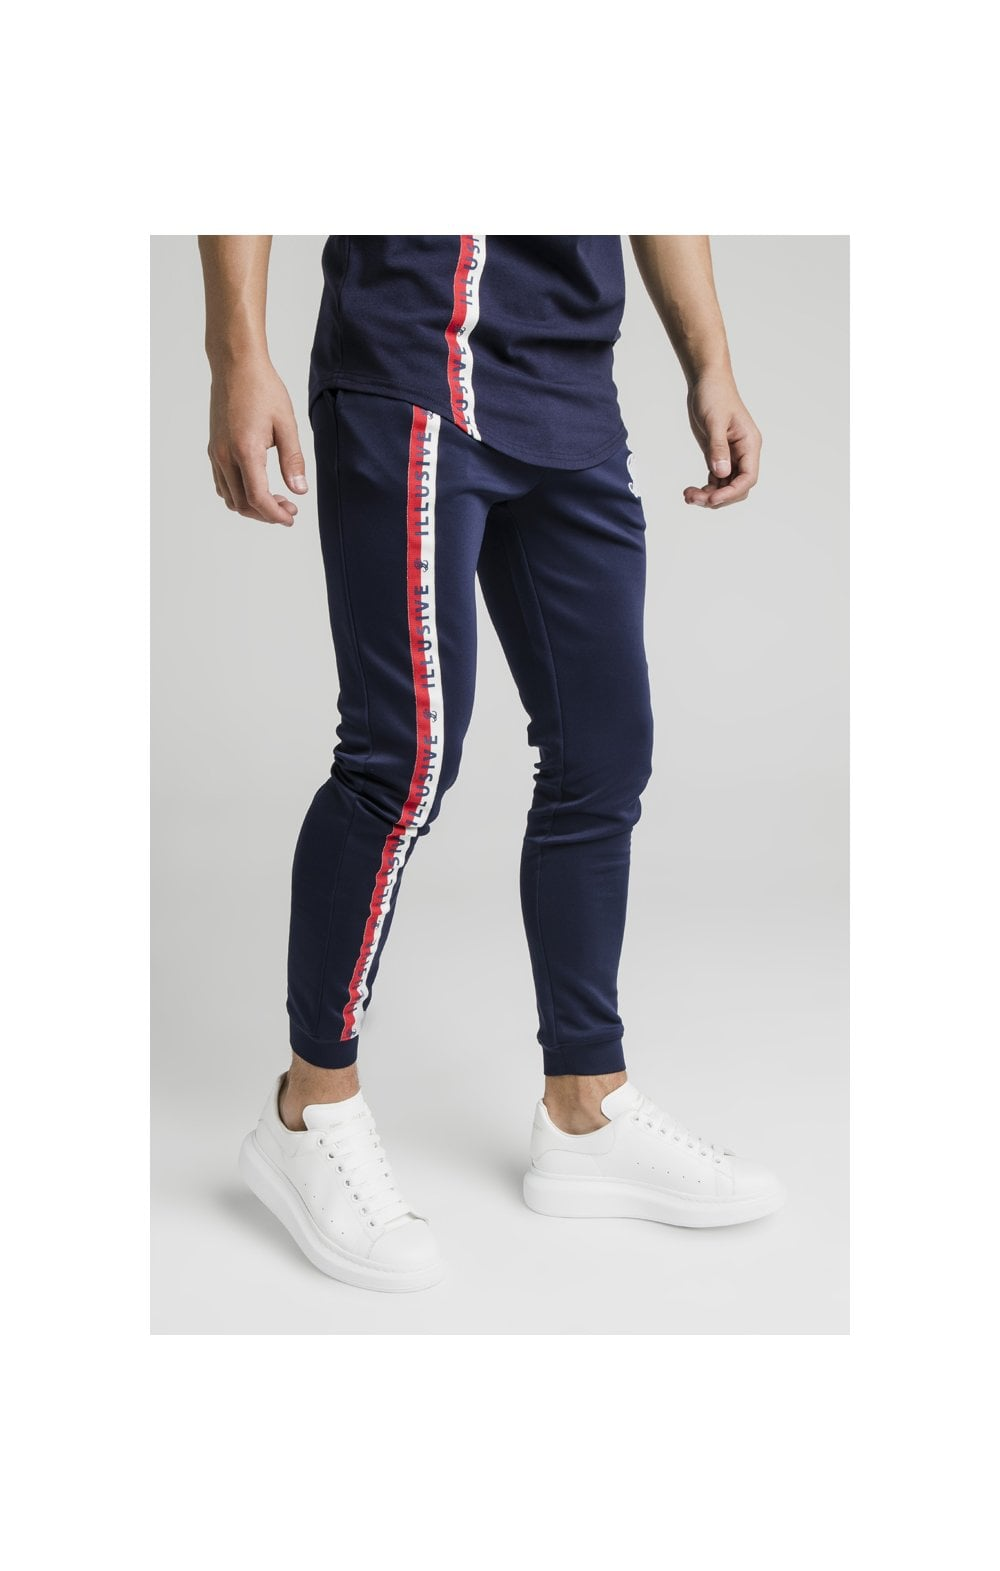 Illusive London Side Tape Joggers - Navy (2)